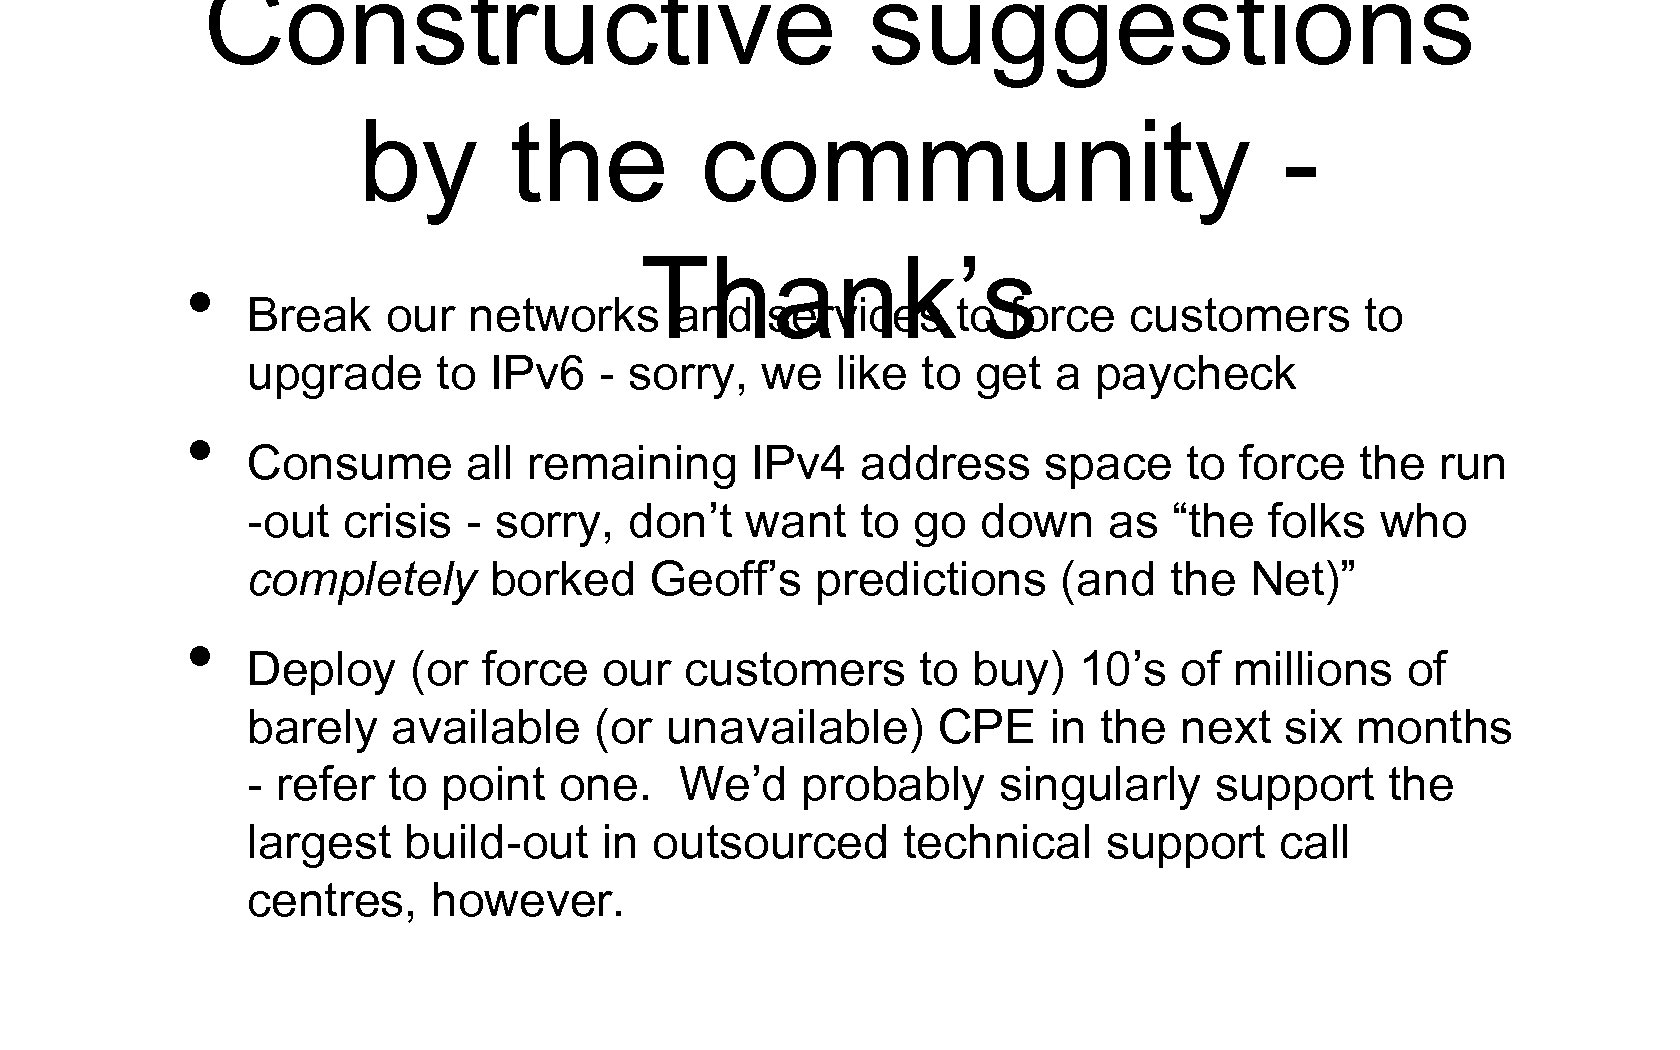 Constructive suggestions by the community • Break our networks and services to force customers